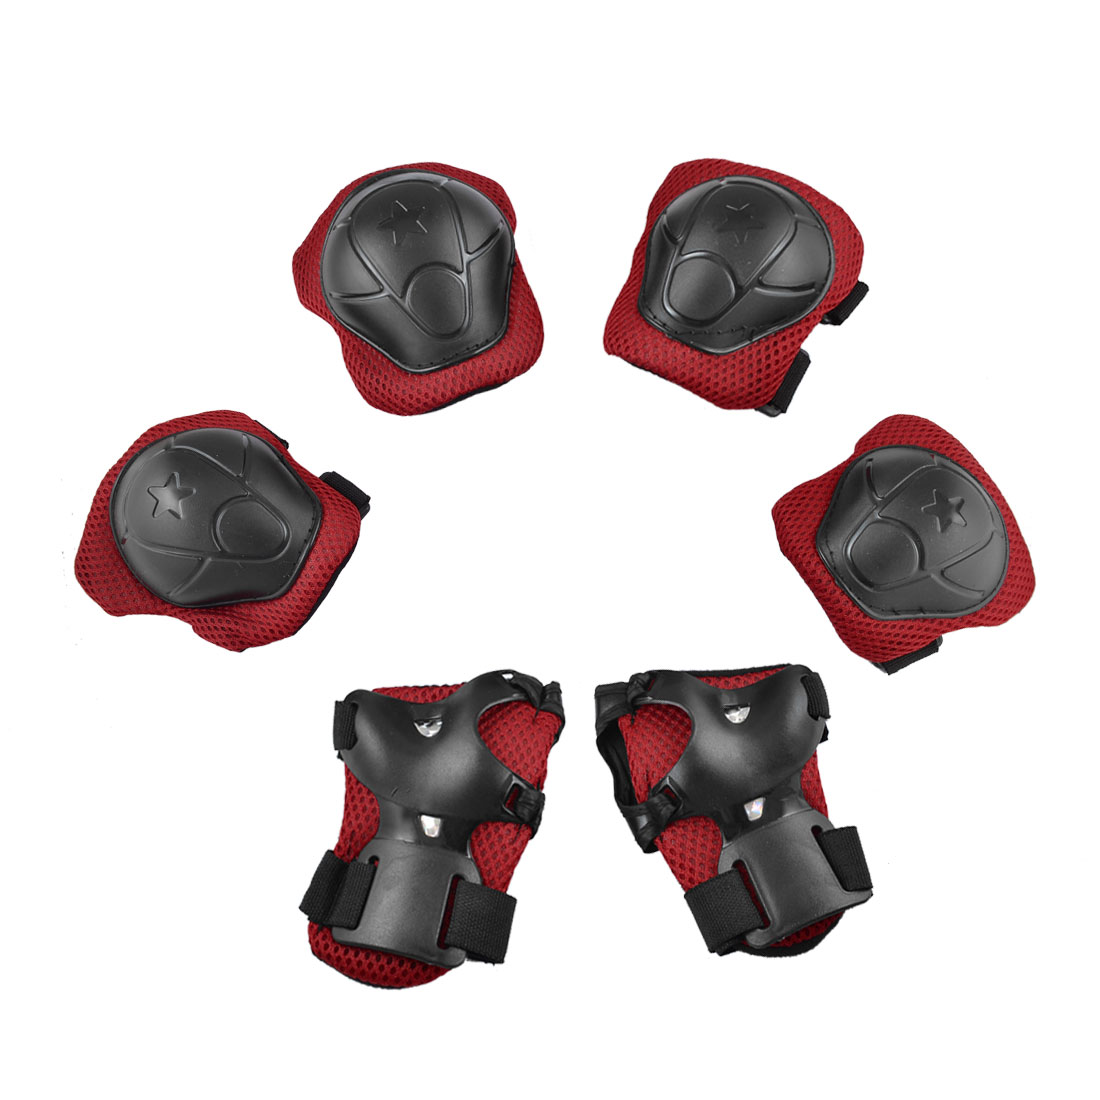 Wrist Palm Elbow Knee Support Brace Protective Gear Pad Red Black 6 in 1 Set